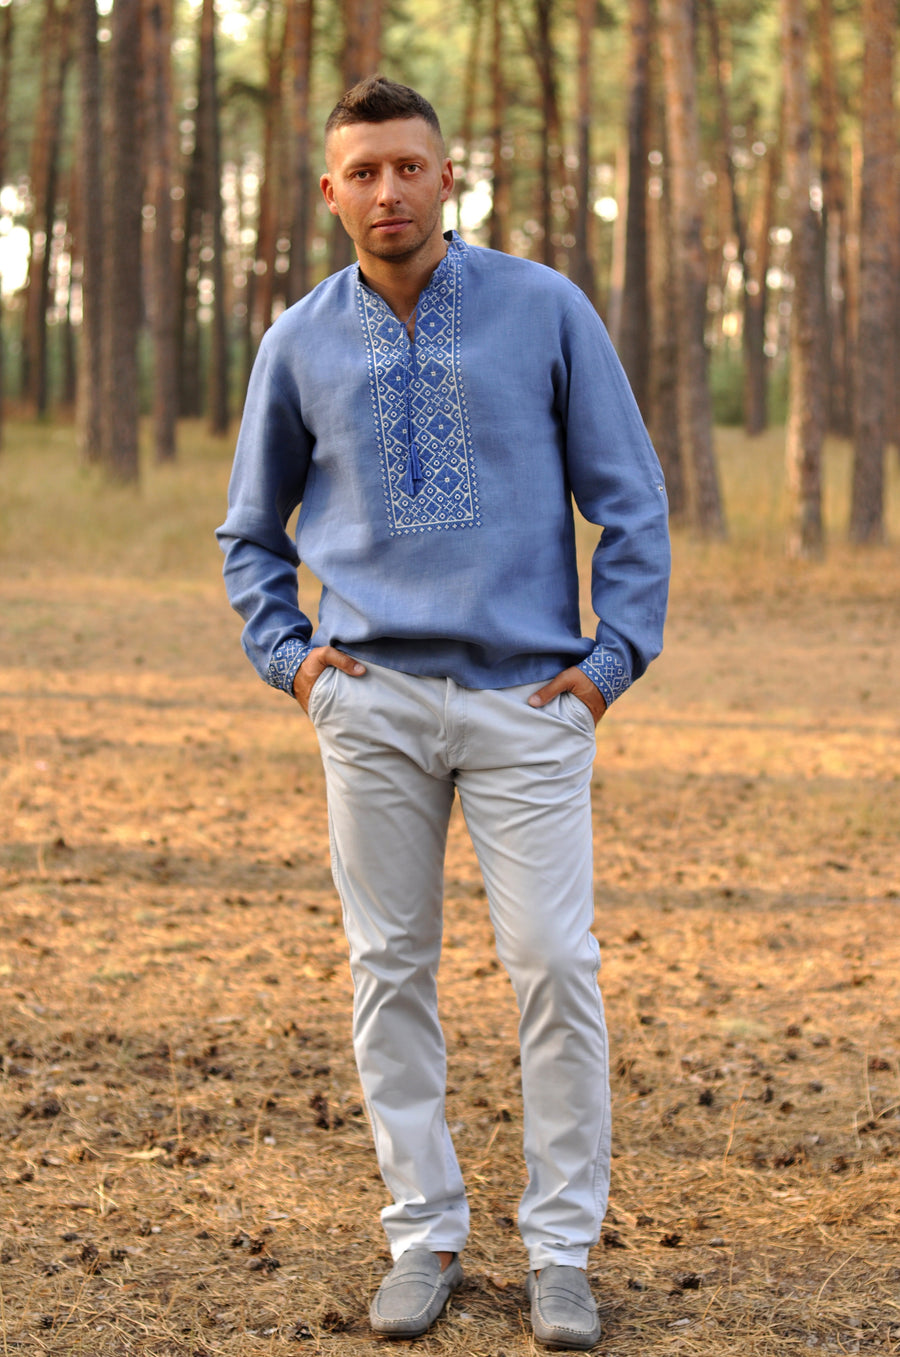 Embroidered denim style shirt